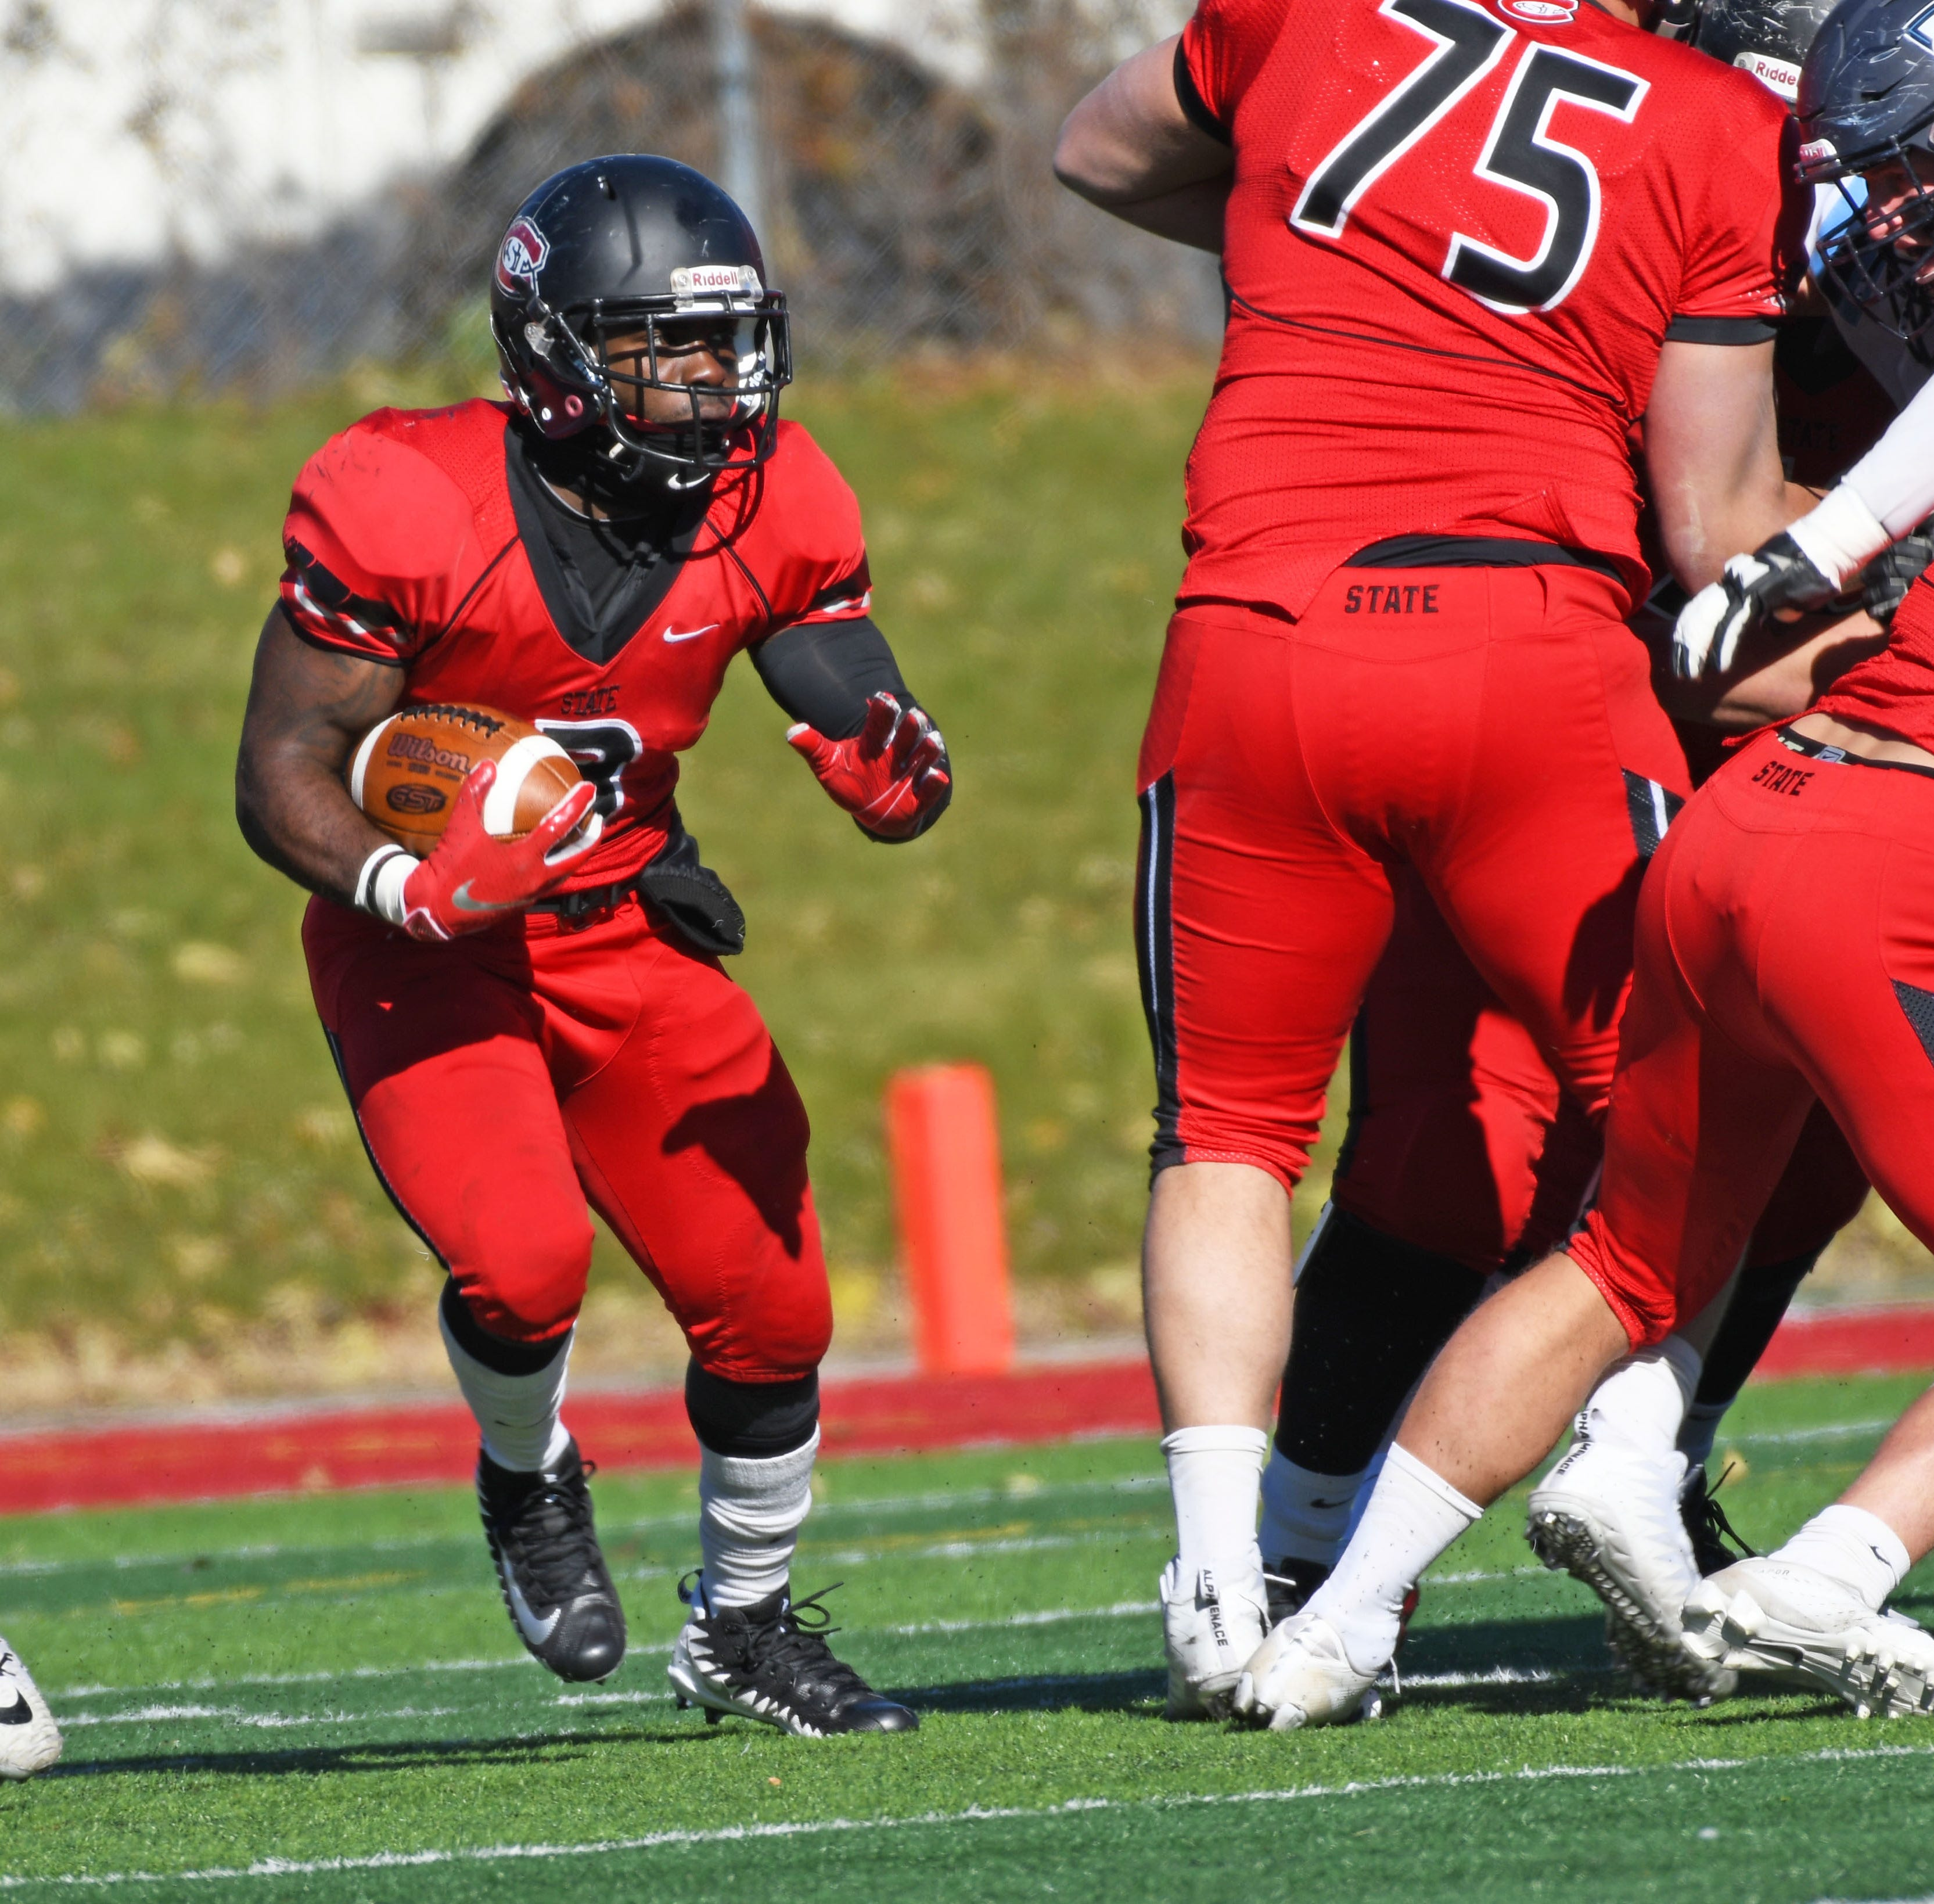 St. Cloud State has big 2nd quarter in homecoming football victory